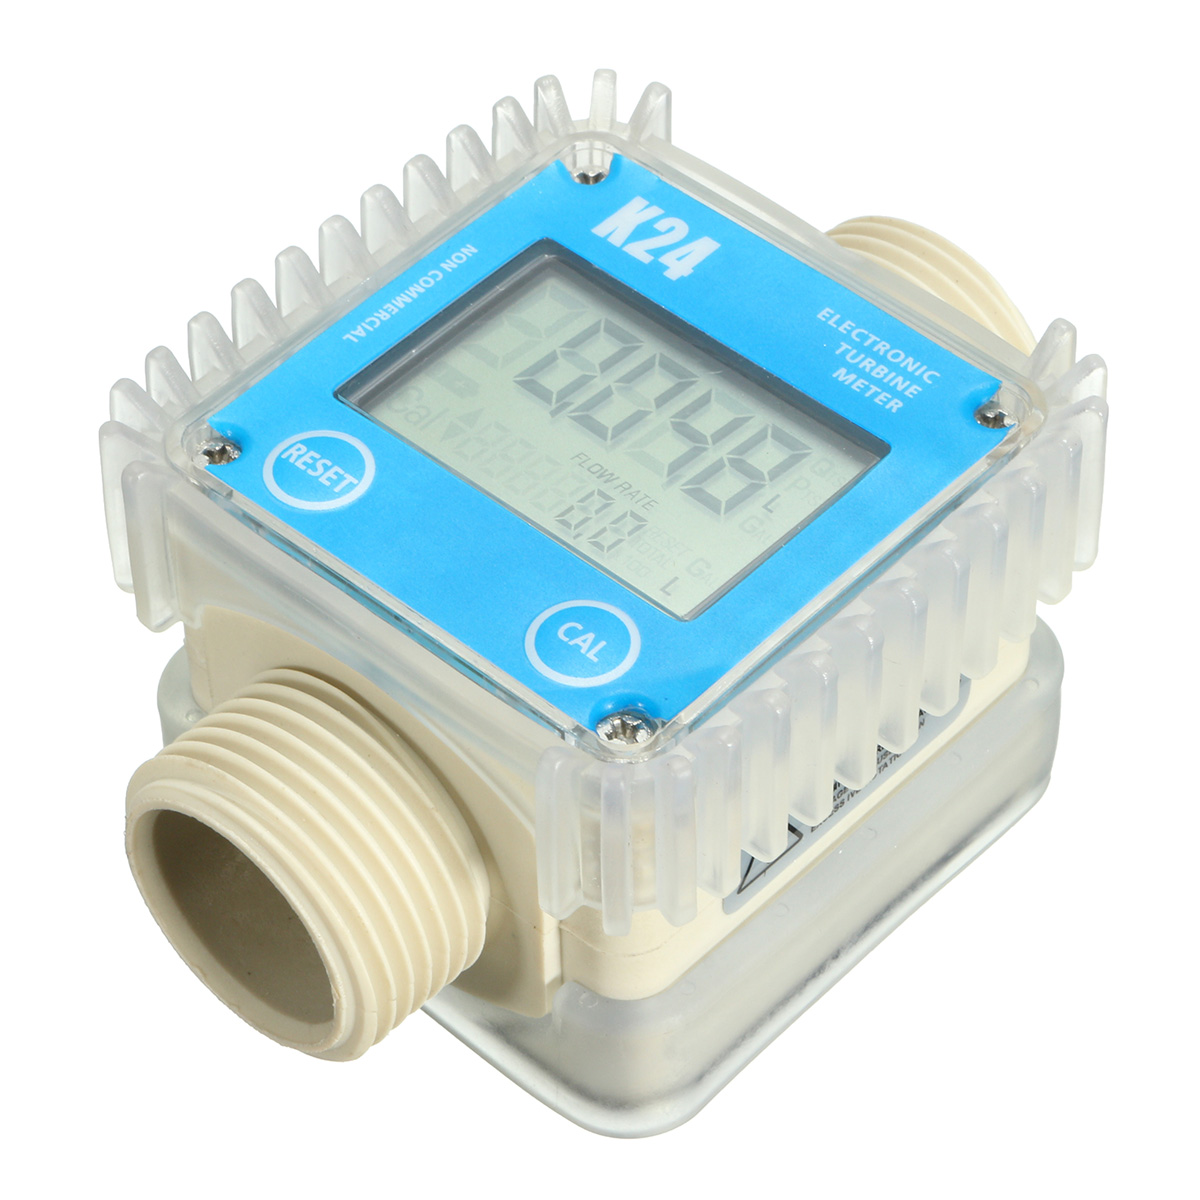 Fuel Flow Meter K24 1 Turbine Digital Diesel Guage Counter For Chemicals Water 0.6MPa 10 120L/Min